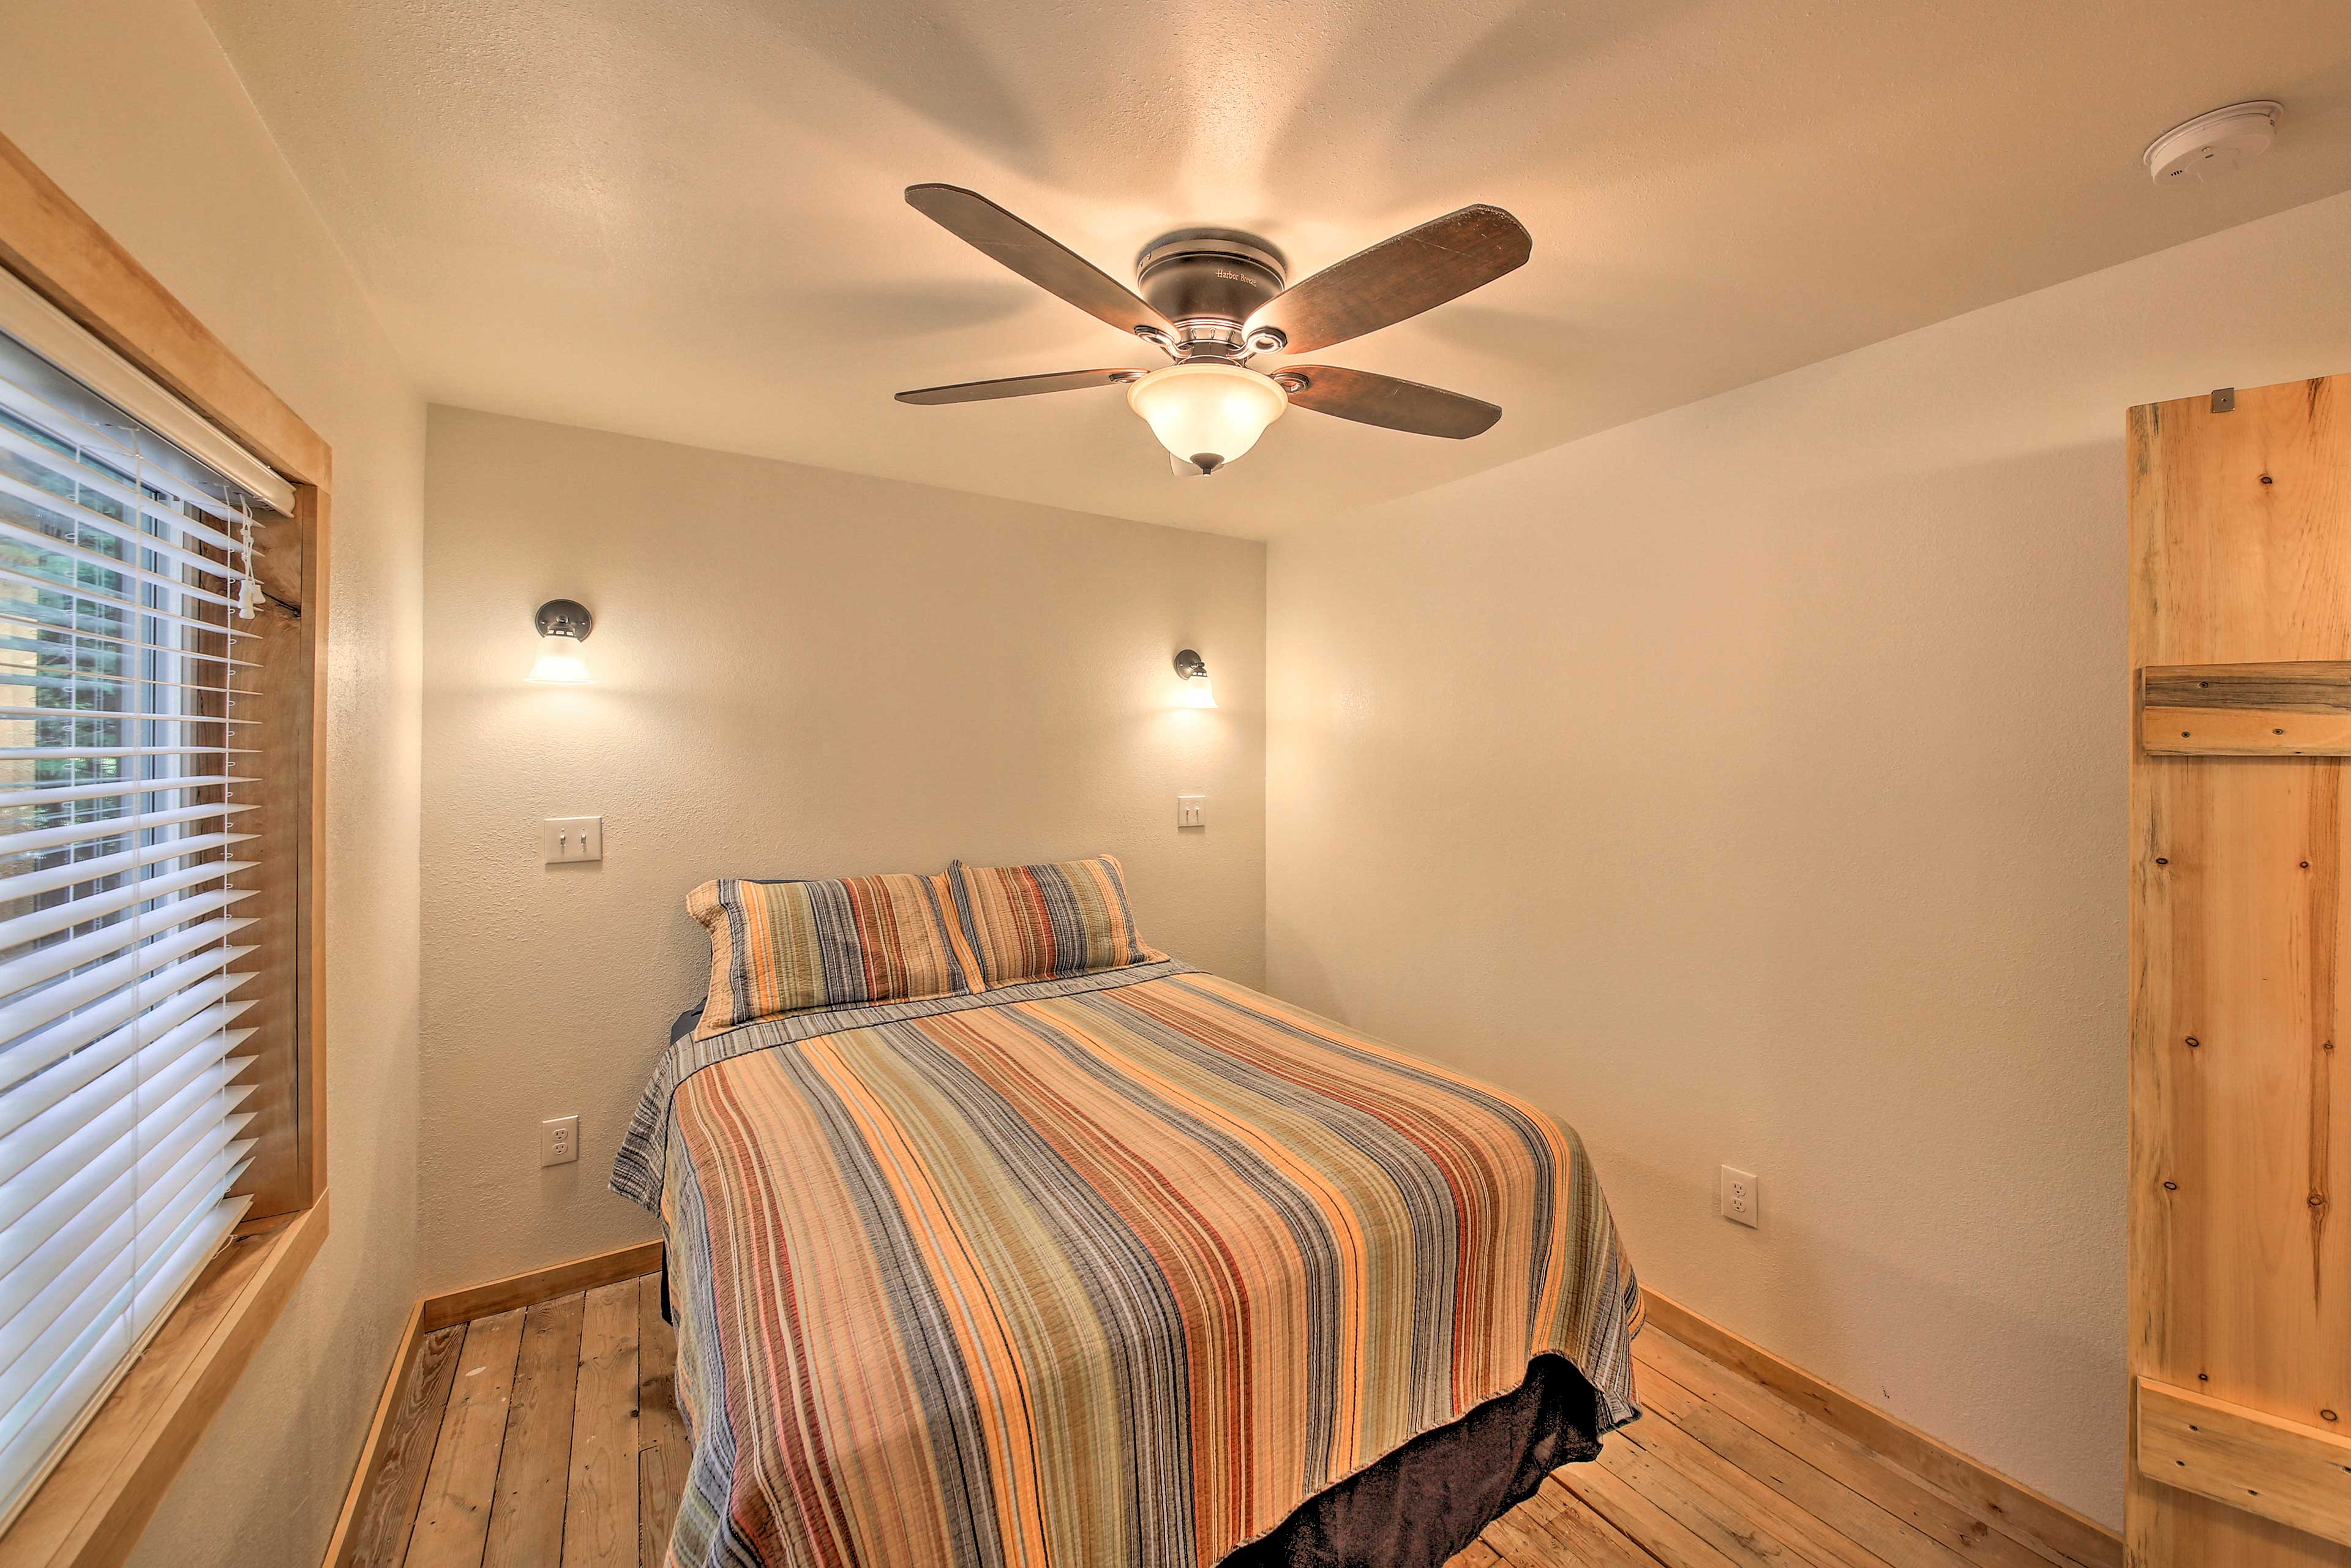 Ceiling fans add extra comfort.